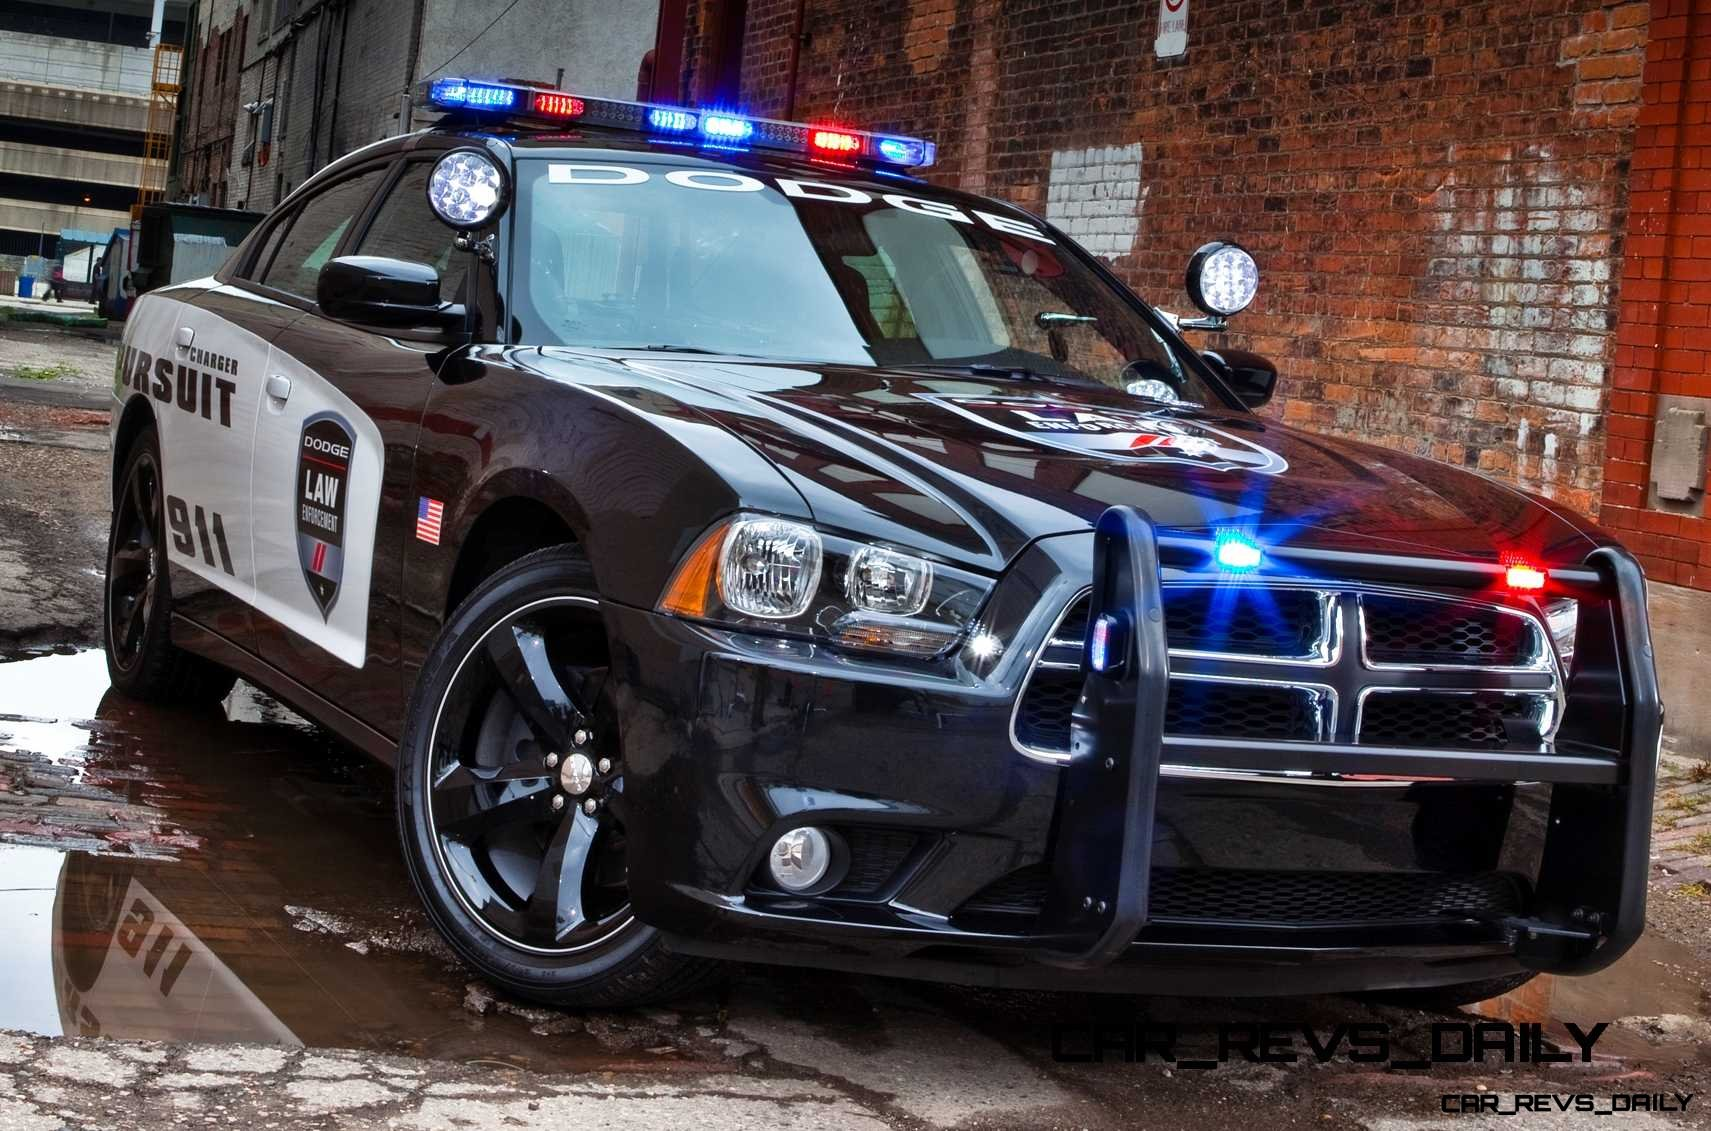 2015 dodge charger pursuit is coolest standard issue highway patrol car ever. Black Bedroom Furniture Sets. Home Design Ideas